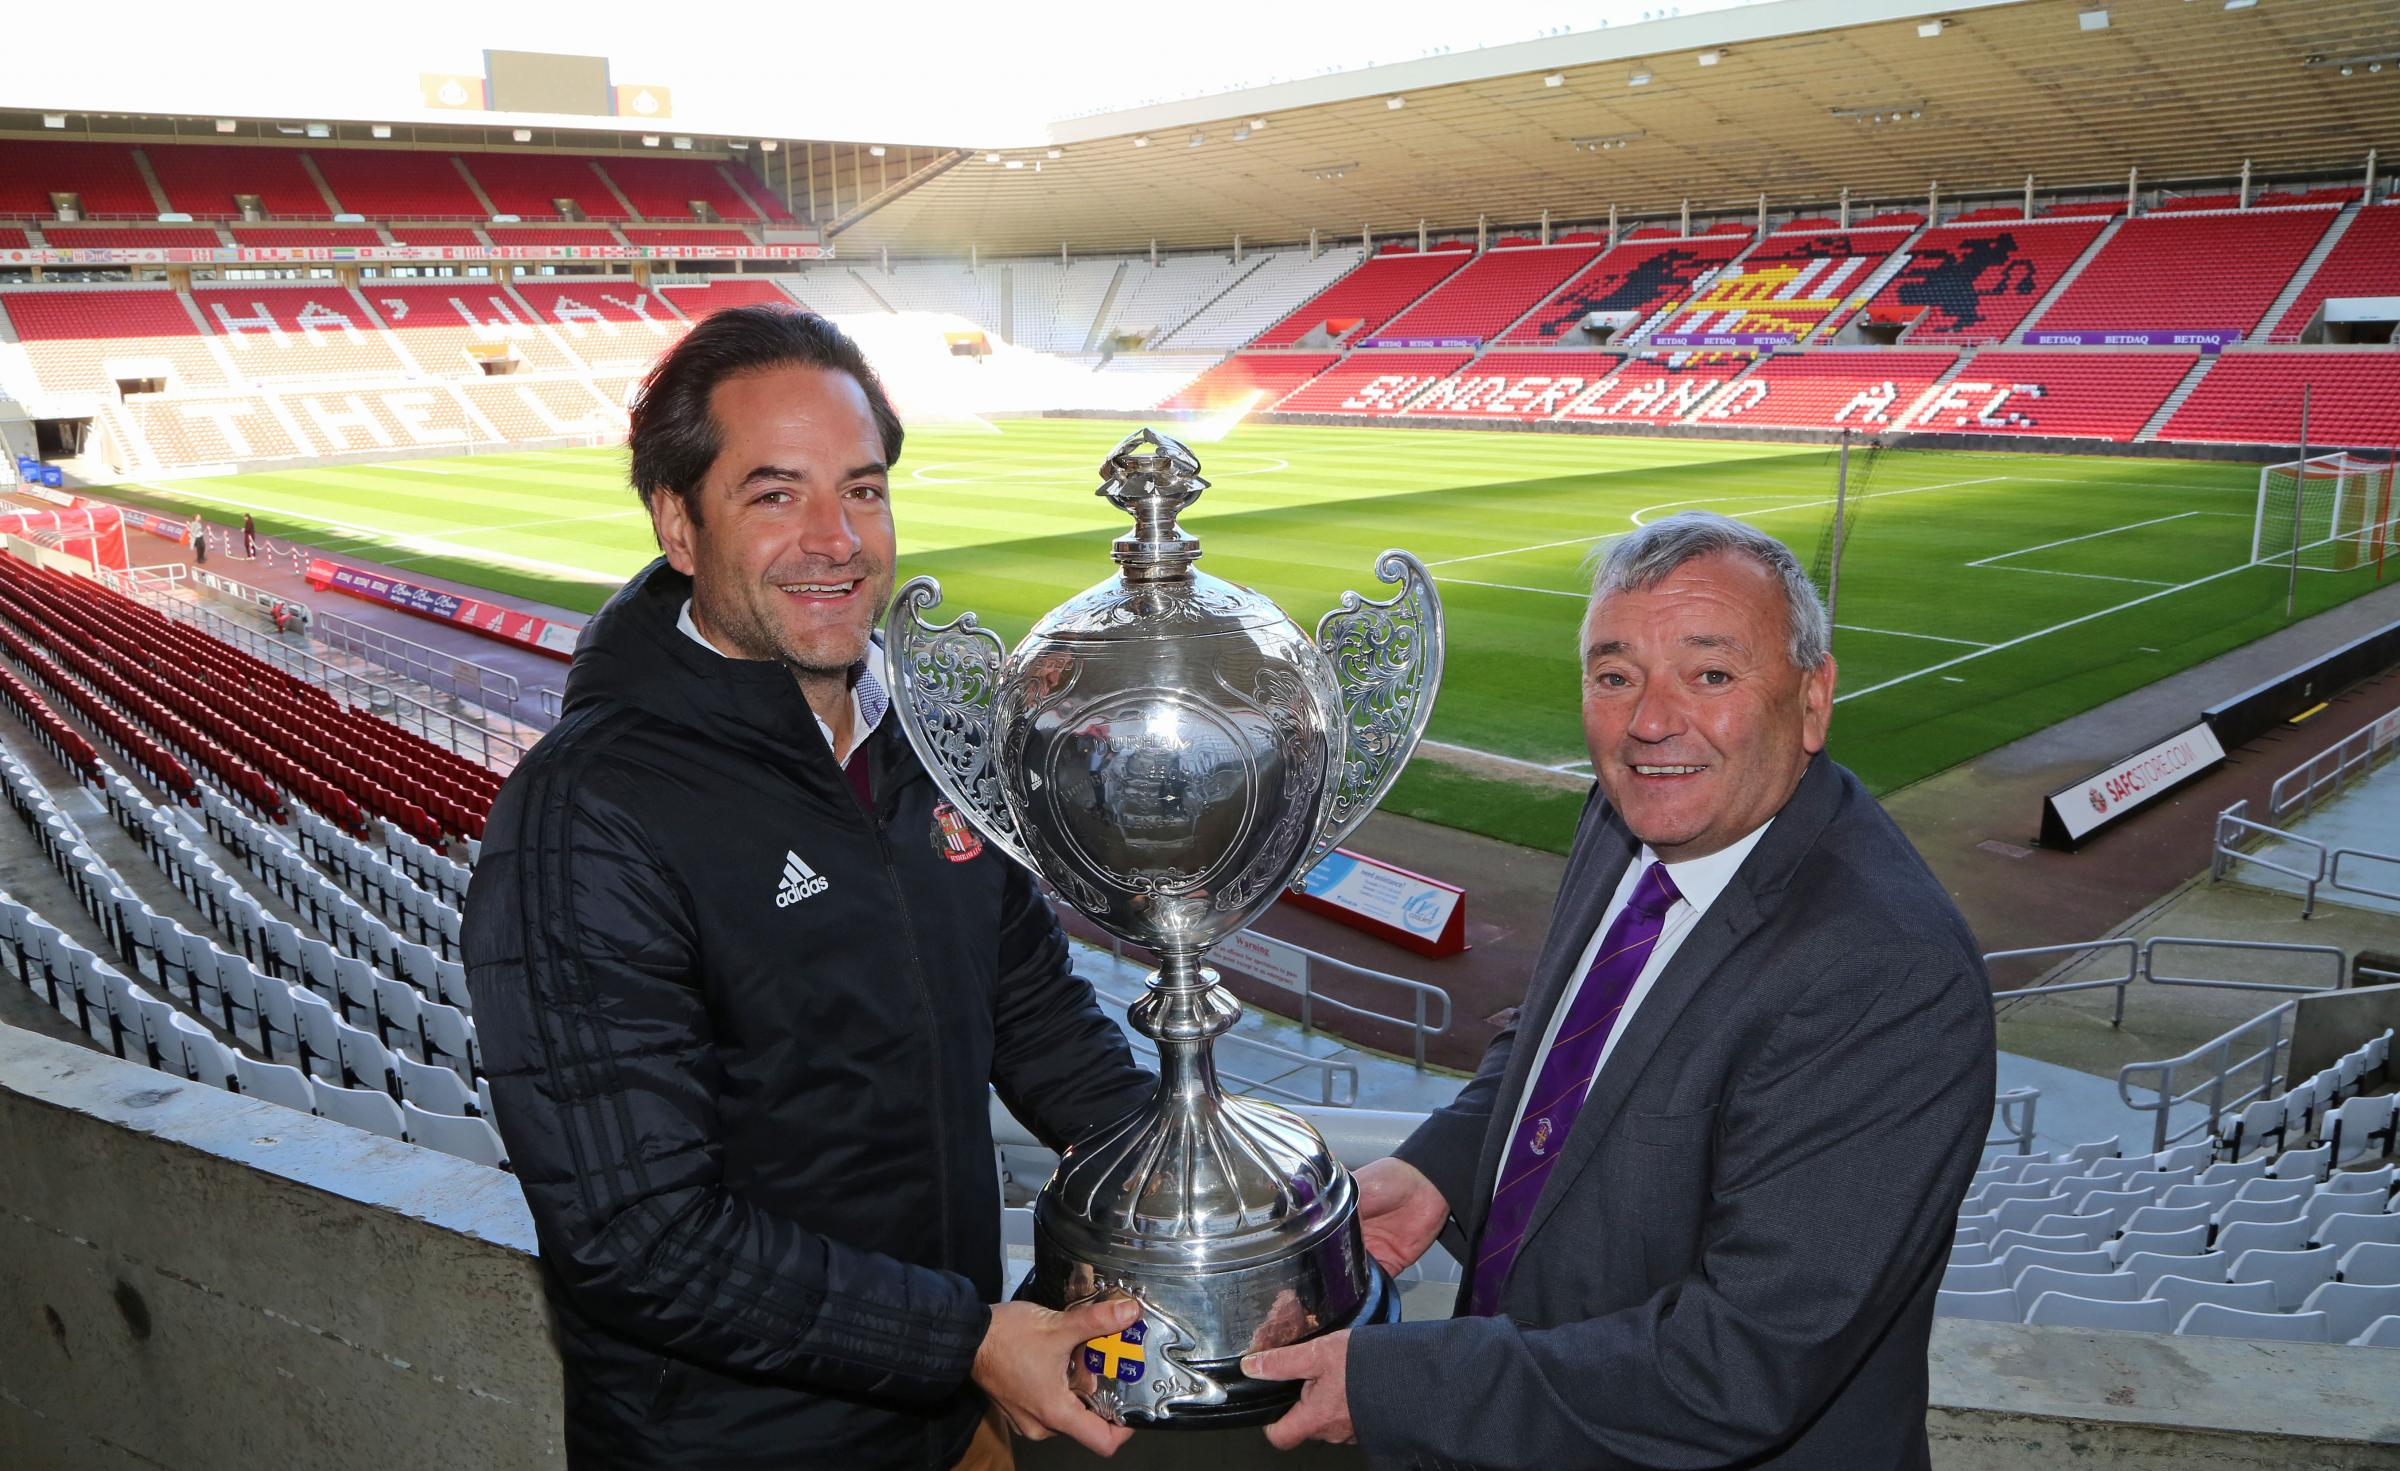 CUP FINAL VENUE: Sunderland chief executive Charlie Methven (left) is pictured with Durham County FA chief executive John Topping (right)